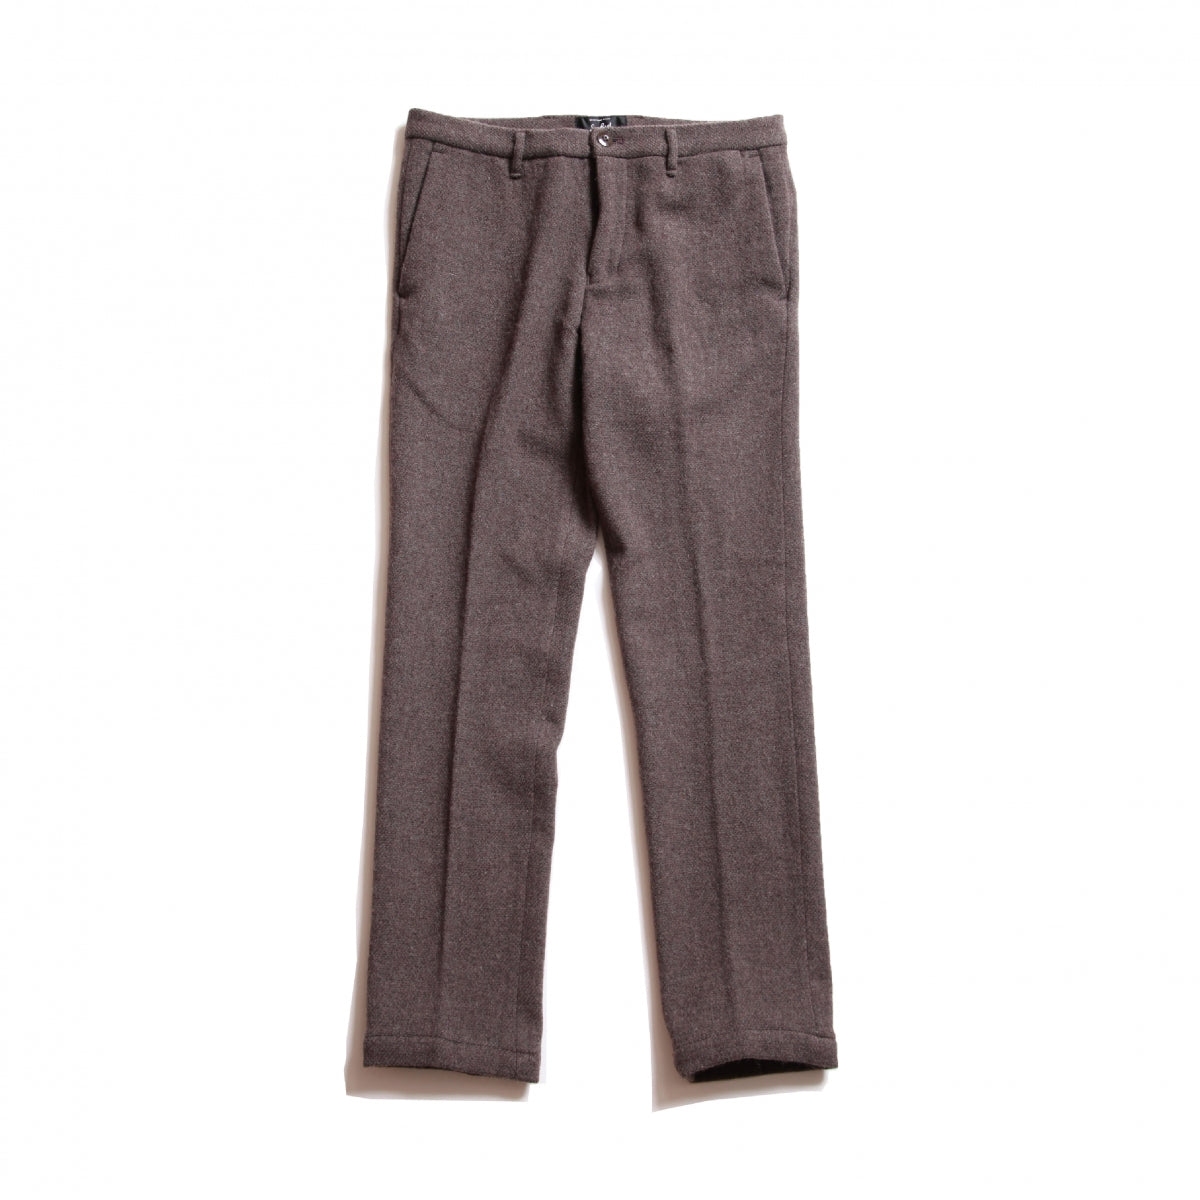 Ivan_Wool Straight Pants